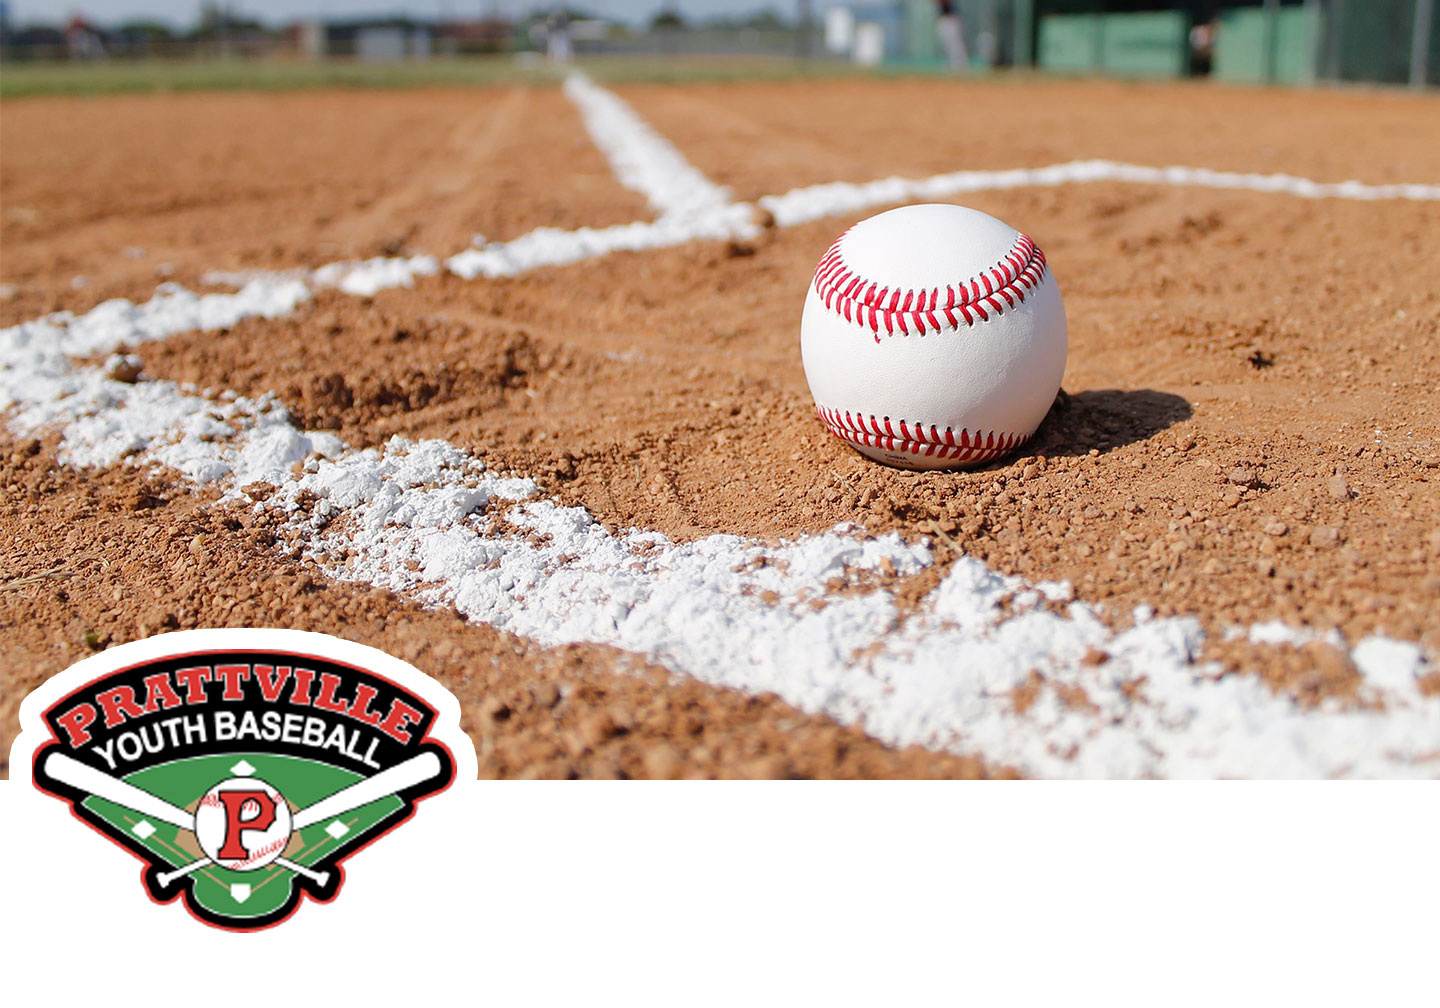 Baseball : Prattville, Alabama - PrattvilleAL gov - Official